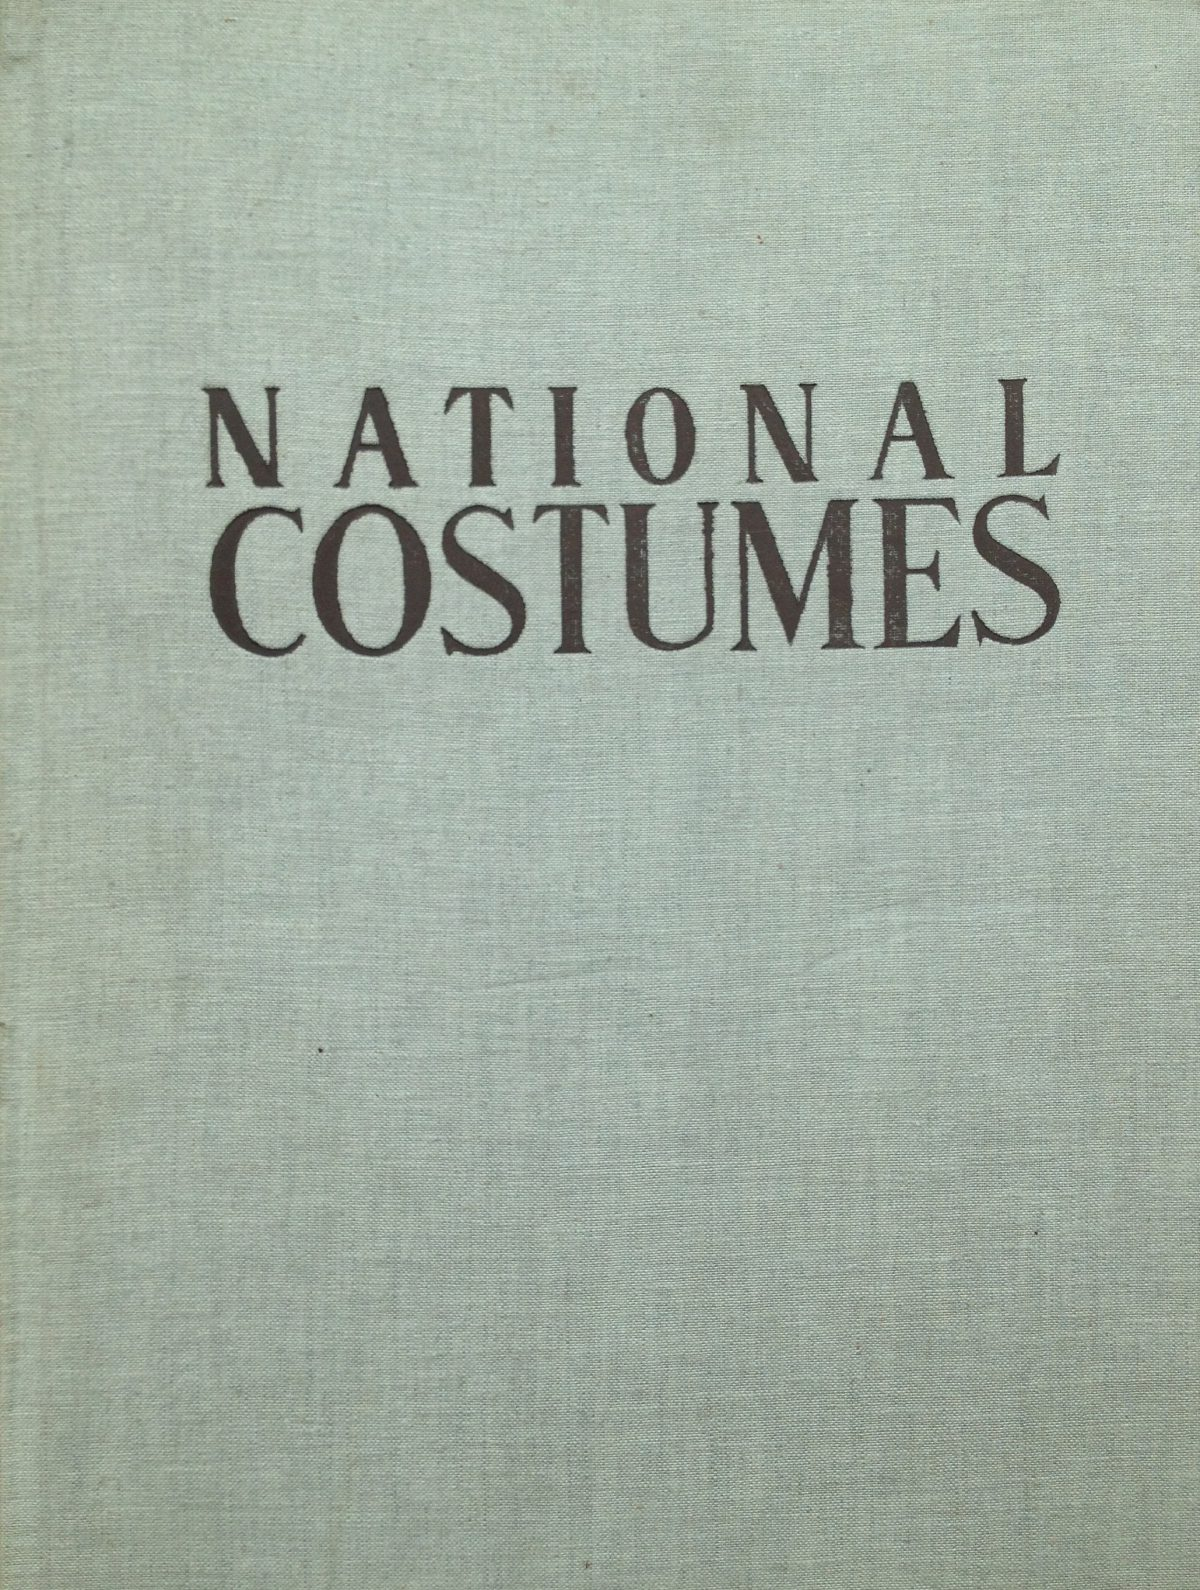 Books on Costume from the Bullitt Library: Peasant Dress Illustrations